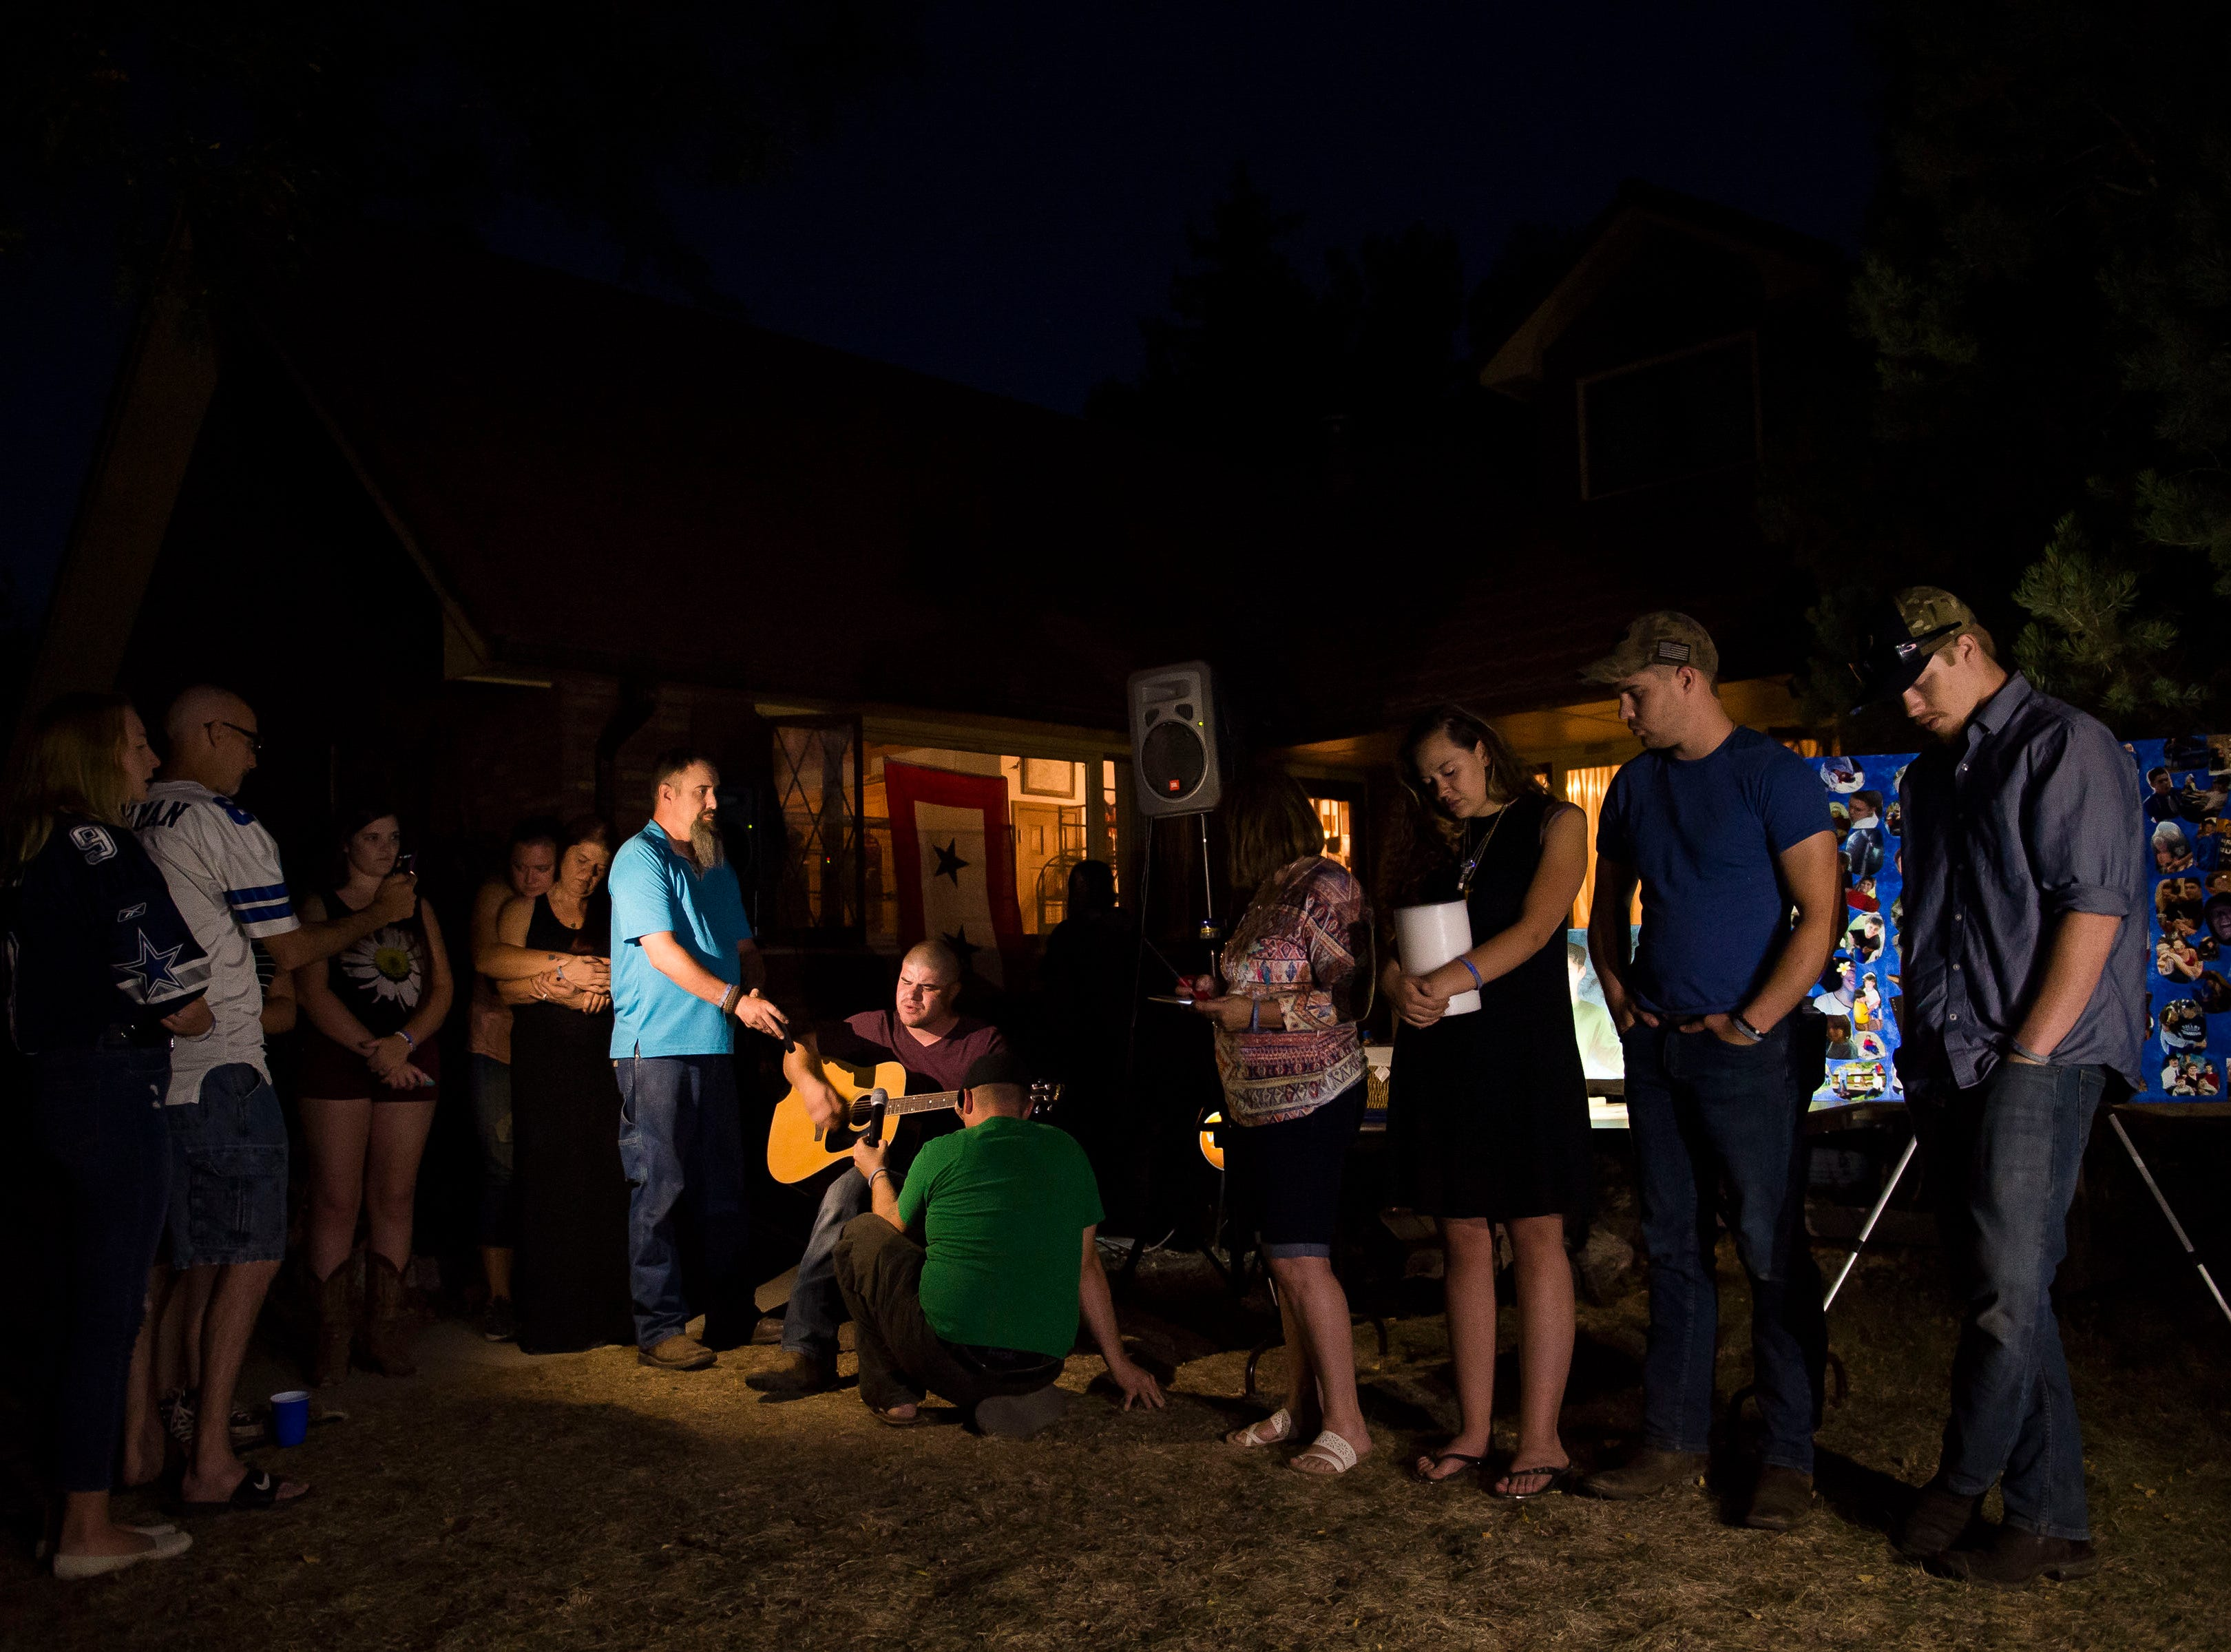 The immediate family of Aric Whaley, a 17 year old who was fatally shot at the home early Tuesday morning, Sept. 4, gather during a vigil on Saturday, Sept. 15, 2018, in Loveland, Colo. Gabriel Jesus Romero Ventura, 18, was arrested by Loveland police less than a mile from the residence on suspicion of manslaughter, first-degree assault and prohibited use of a weapon.